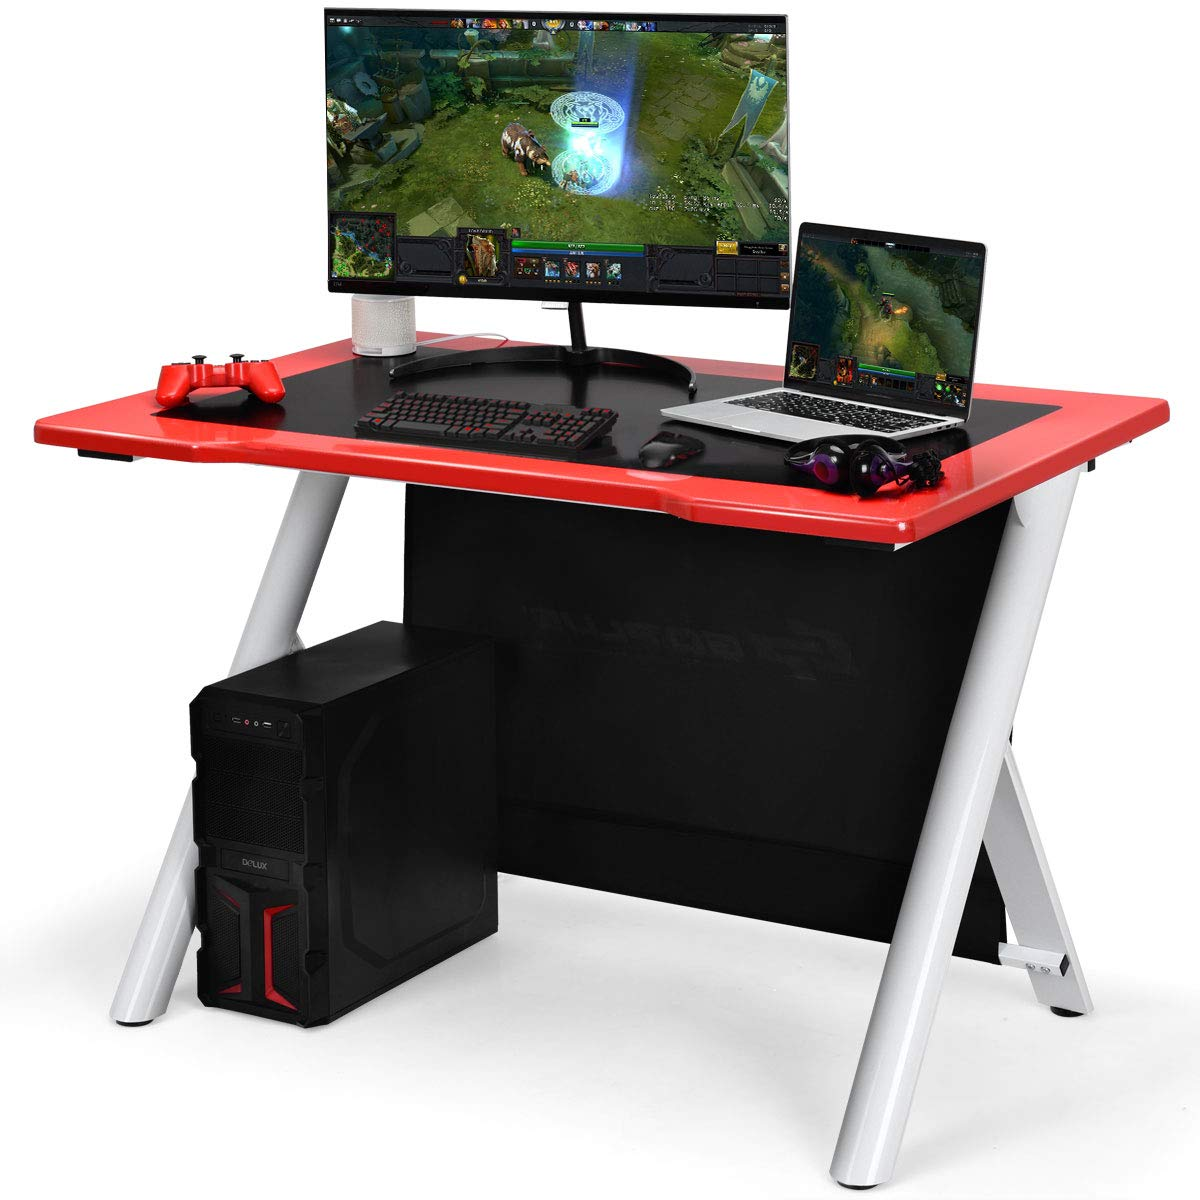 Tangkula Gaming Desk, Gaming Computer Desk, Gamers Computer Desk, Gaming Workstation, Computer Desk PC Desk 45 X29.5 Lx W